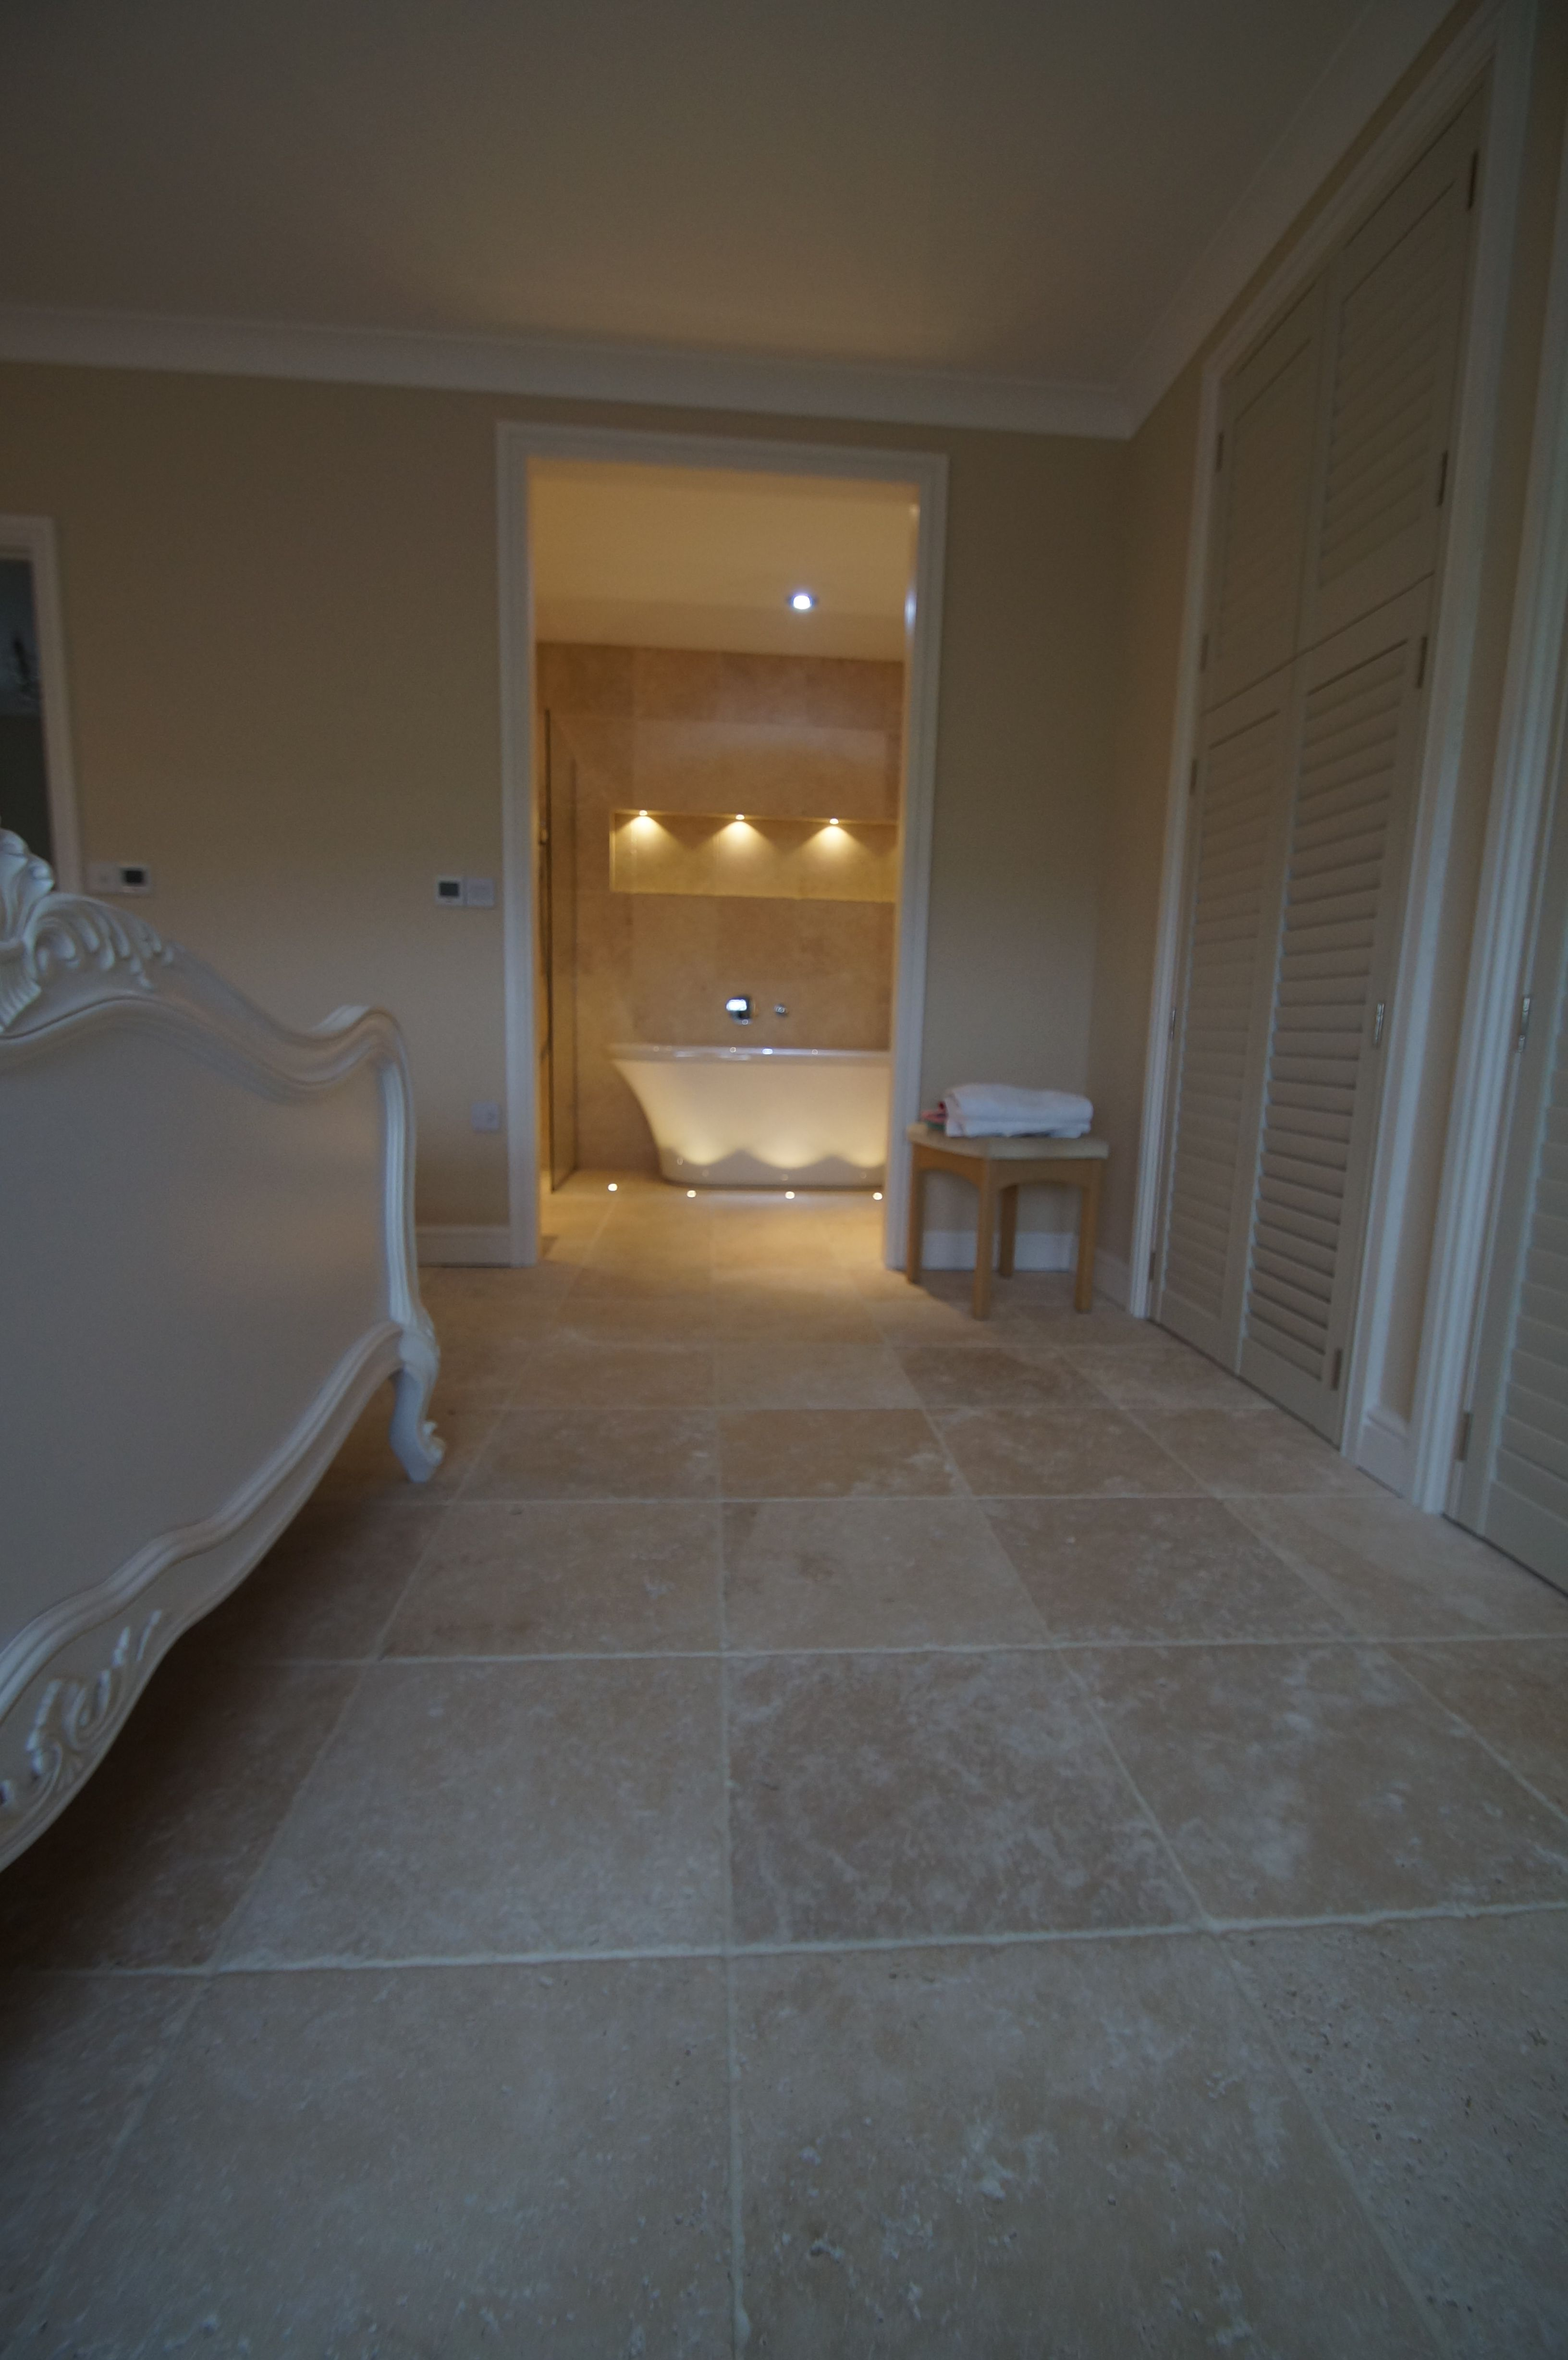 Bedroom Travertine Floor Google Search Flooring Tile